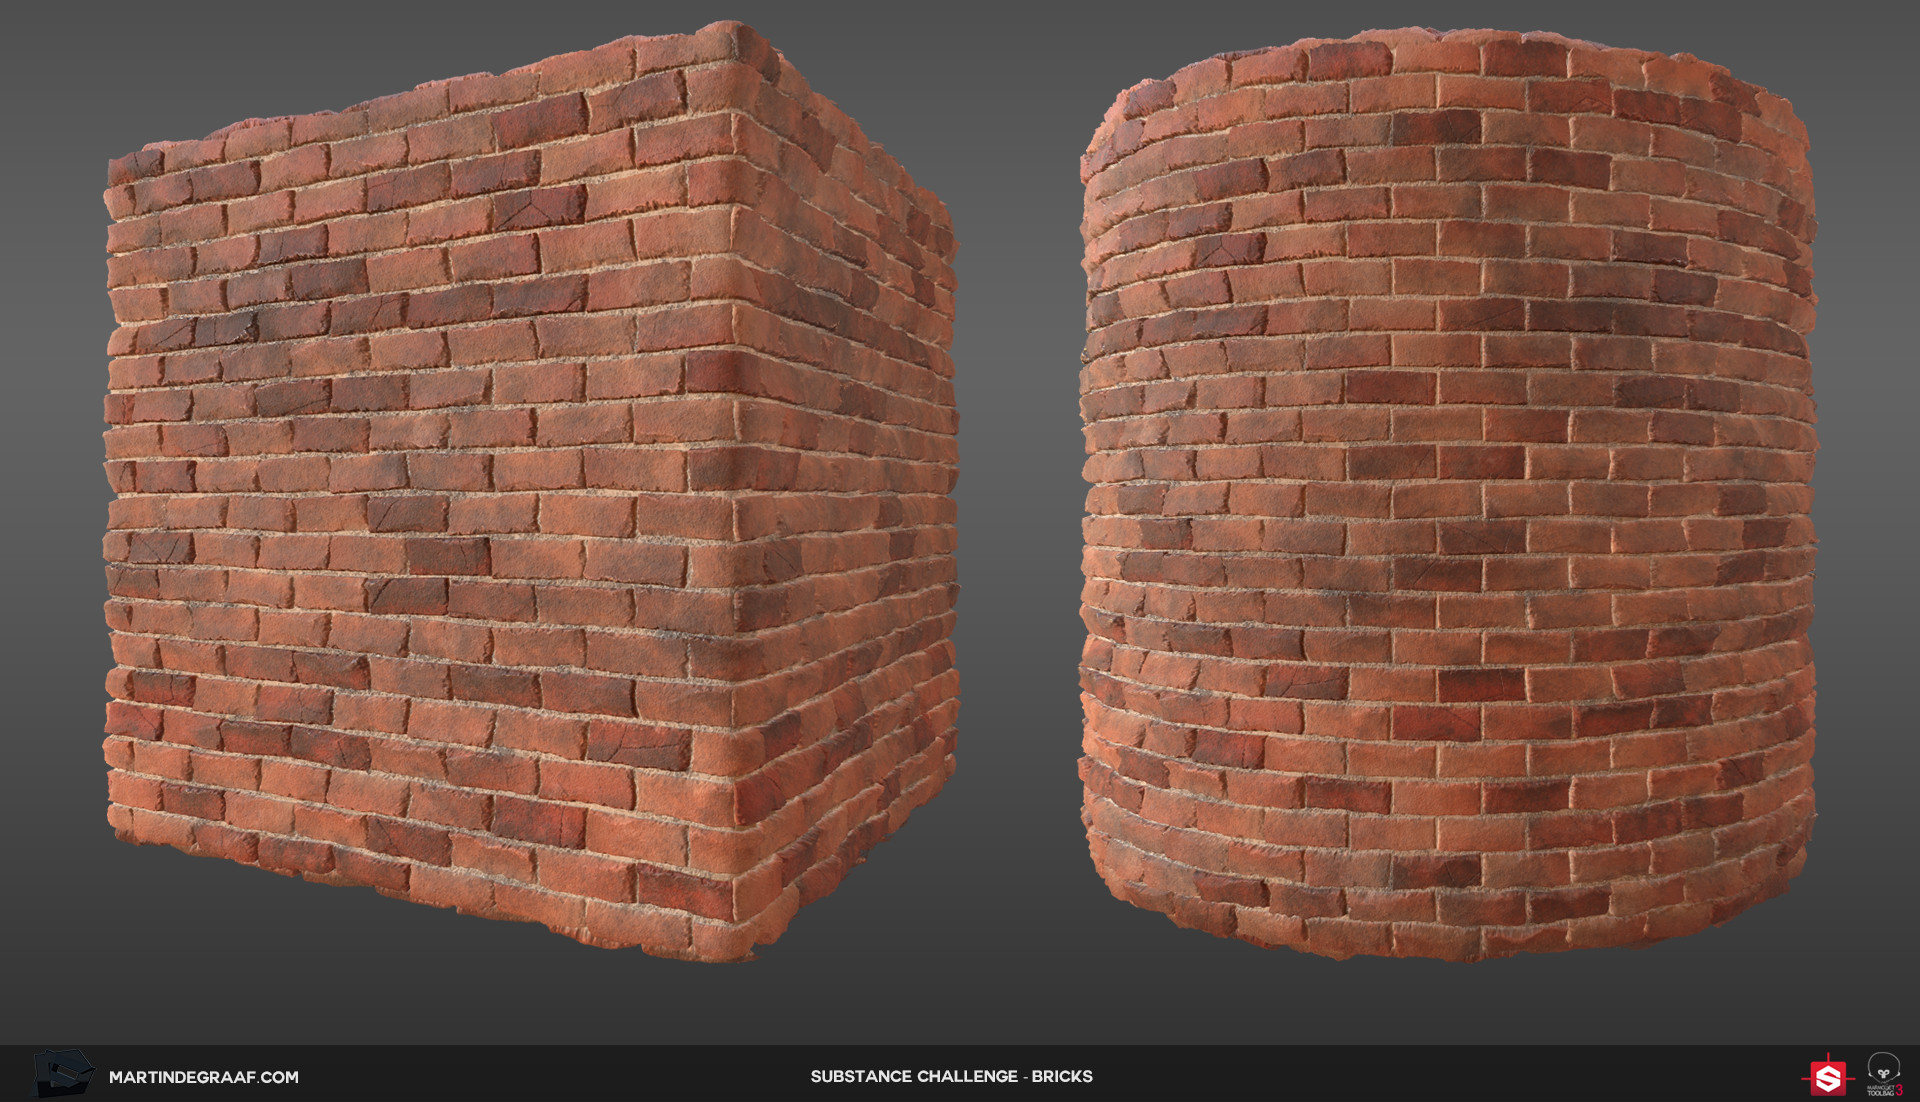 Martin de graaf substance challenge bricks substance martin de graaf 2017